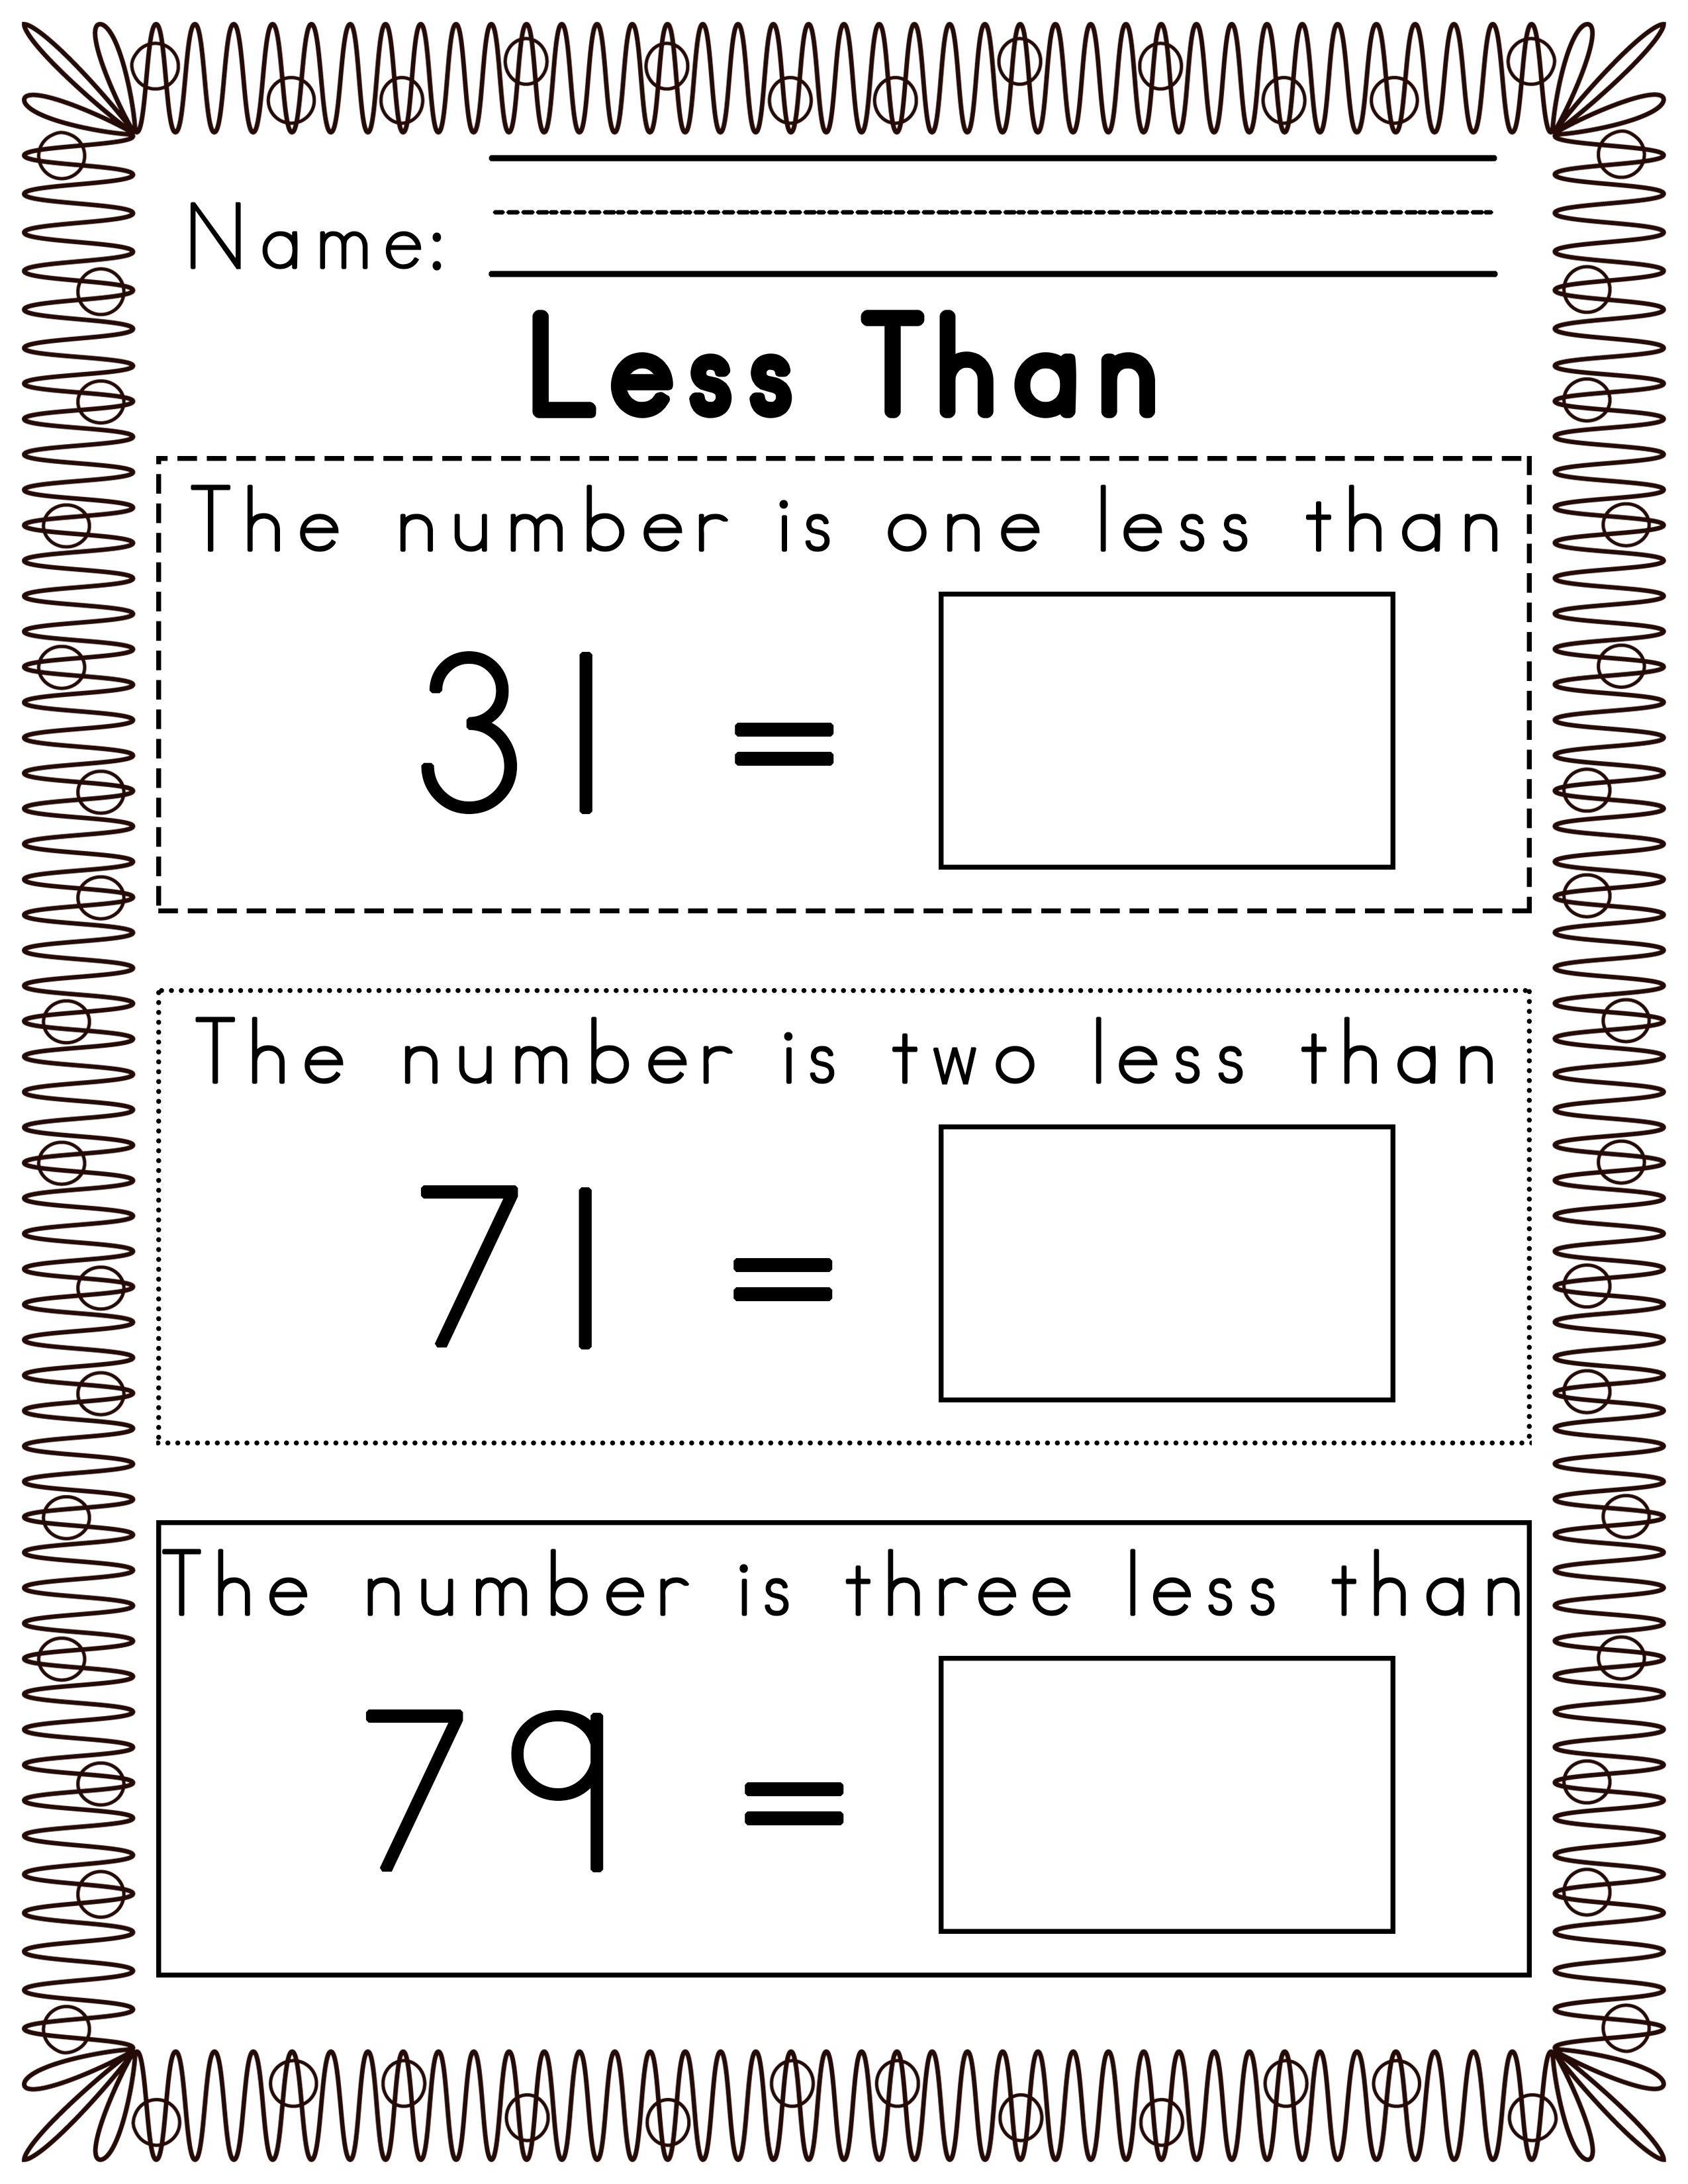 worksheet One More Than Worksheets For Kindergarten worksheets for 100 hundred chart one two three less than printables